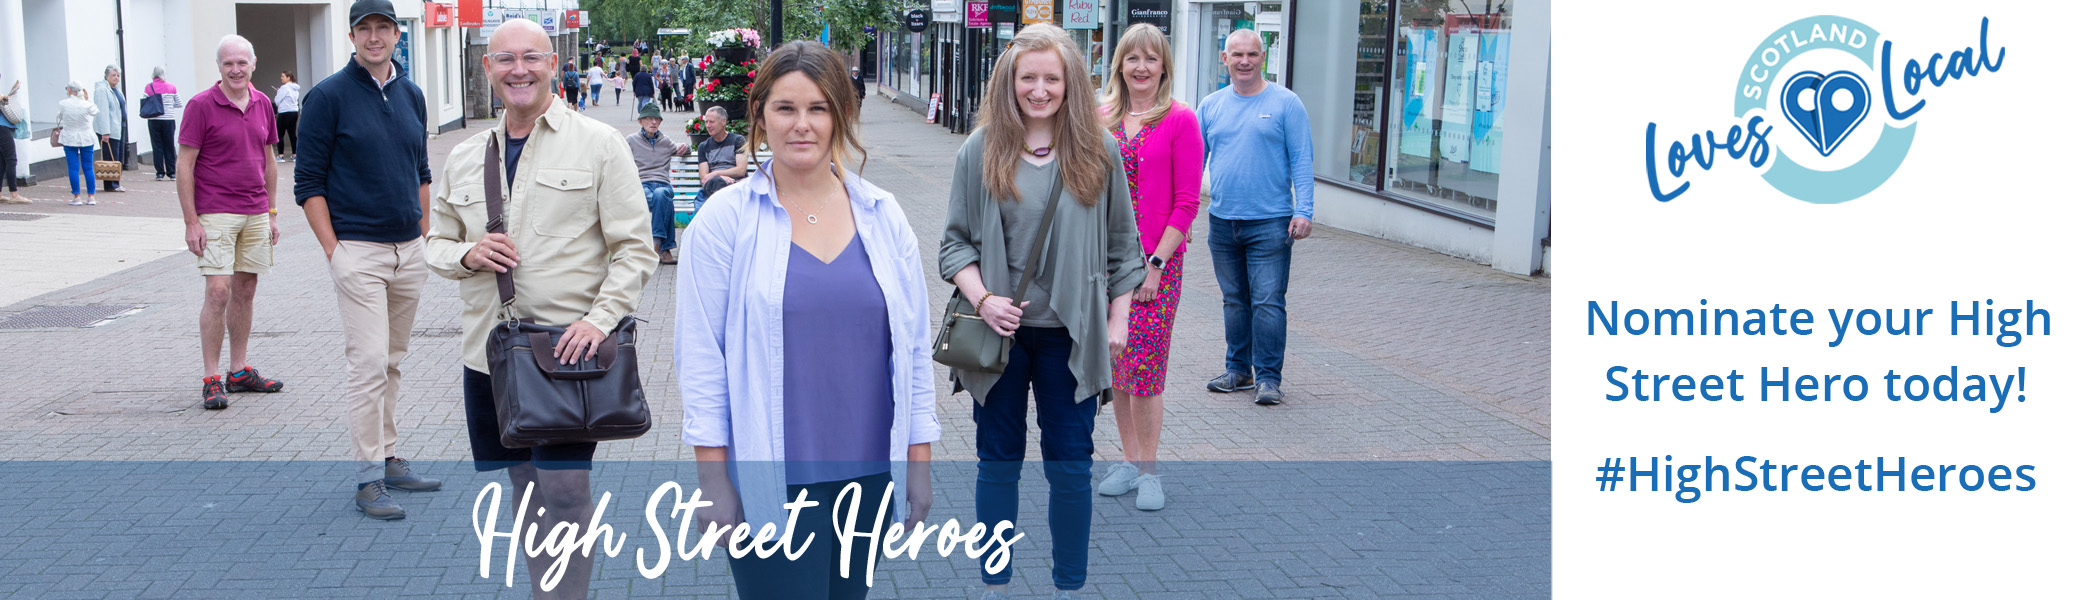 High Street Heroes Awards Announced